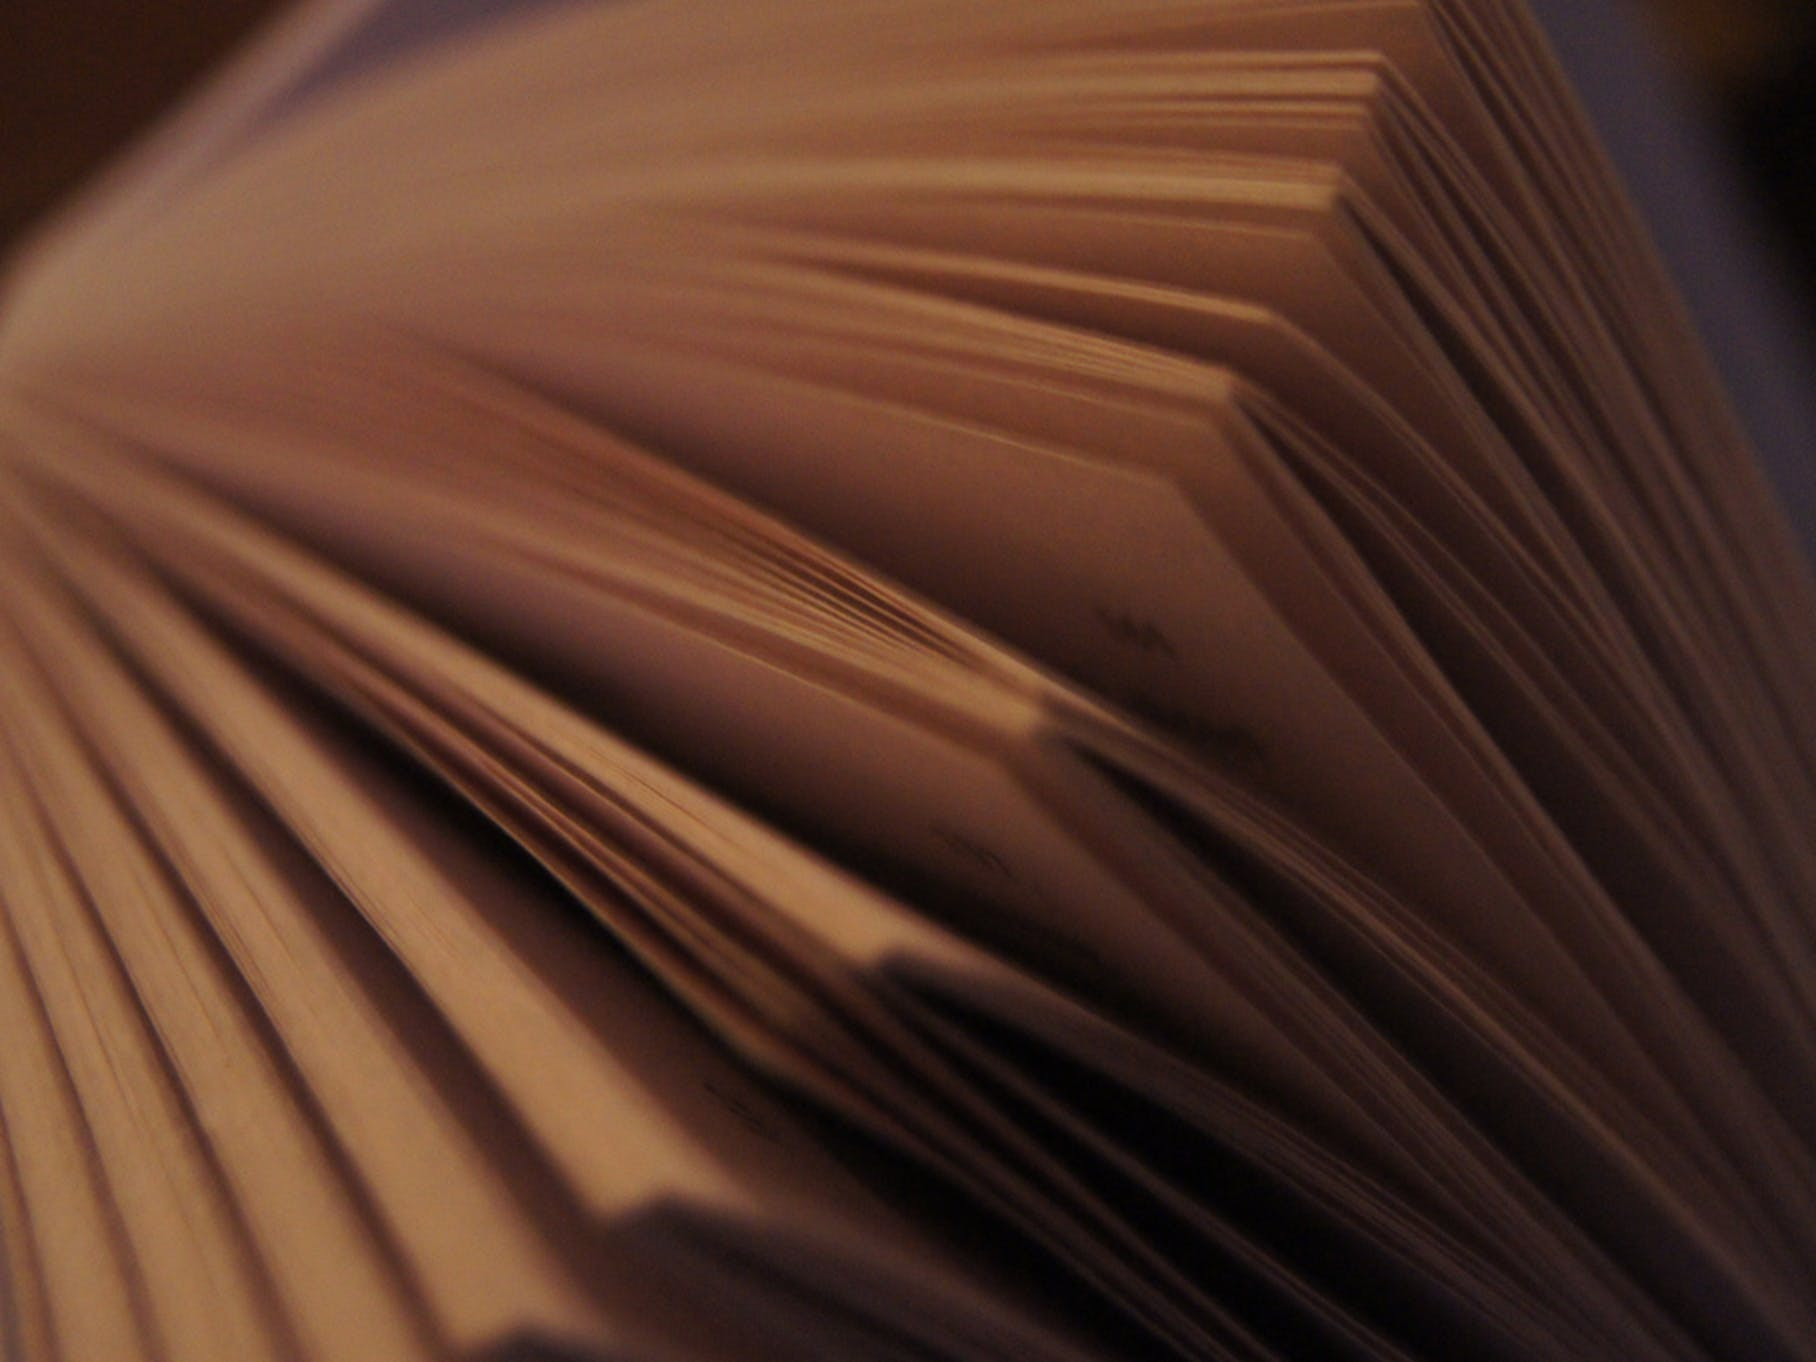 Book pages.